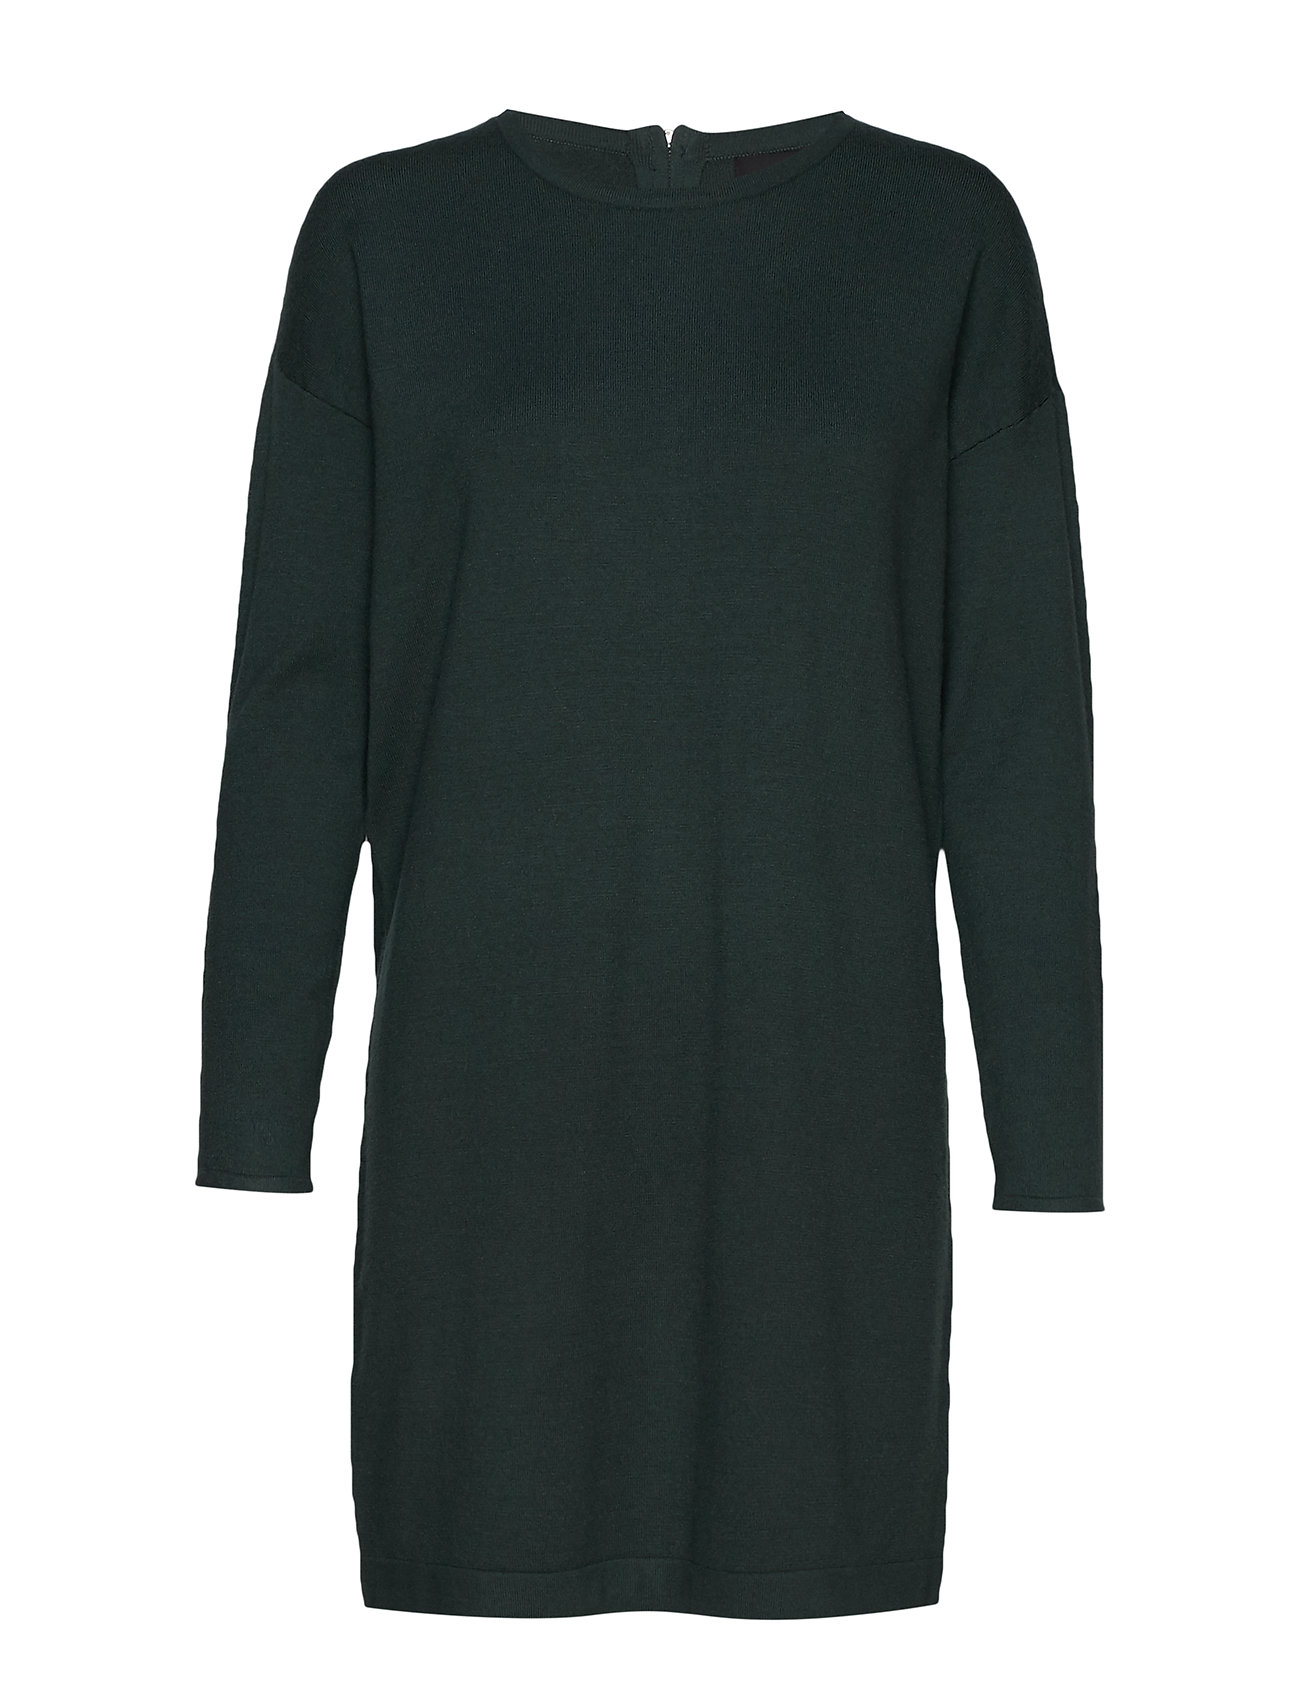 Vero Moda VMHAPPY BASIC LS ZIPPER DRESS COLOR - PONDEROSA PINE